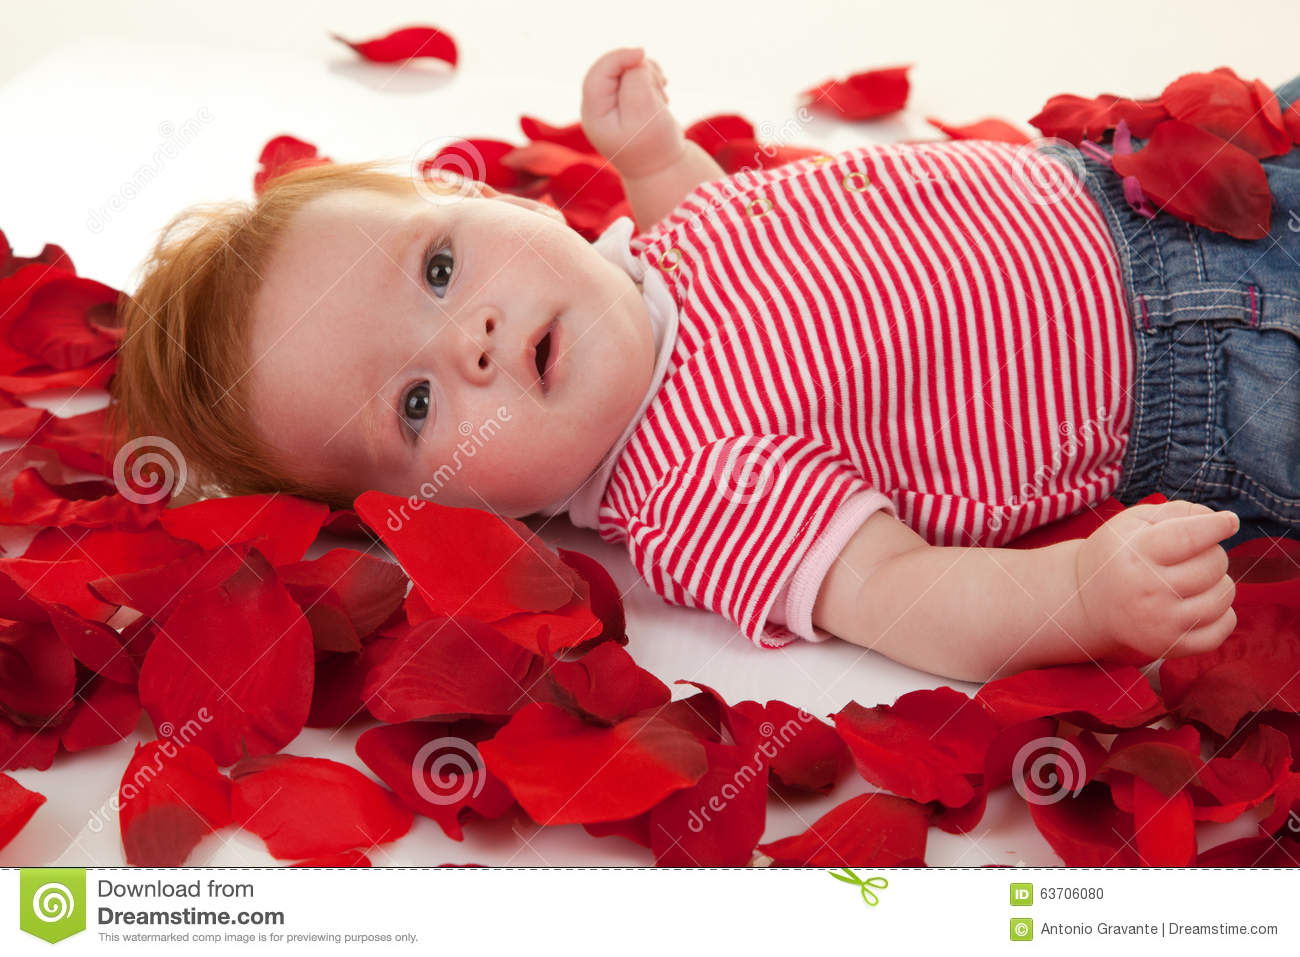 Baby Girl On Petals Roses Stock Photo - Image: 63706080